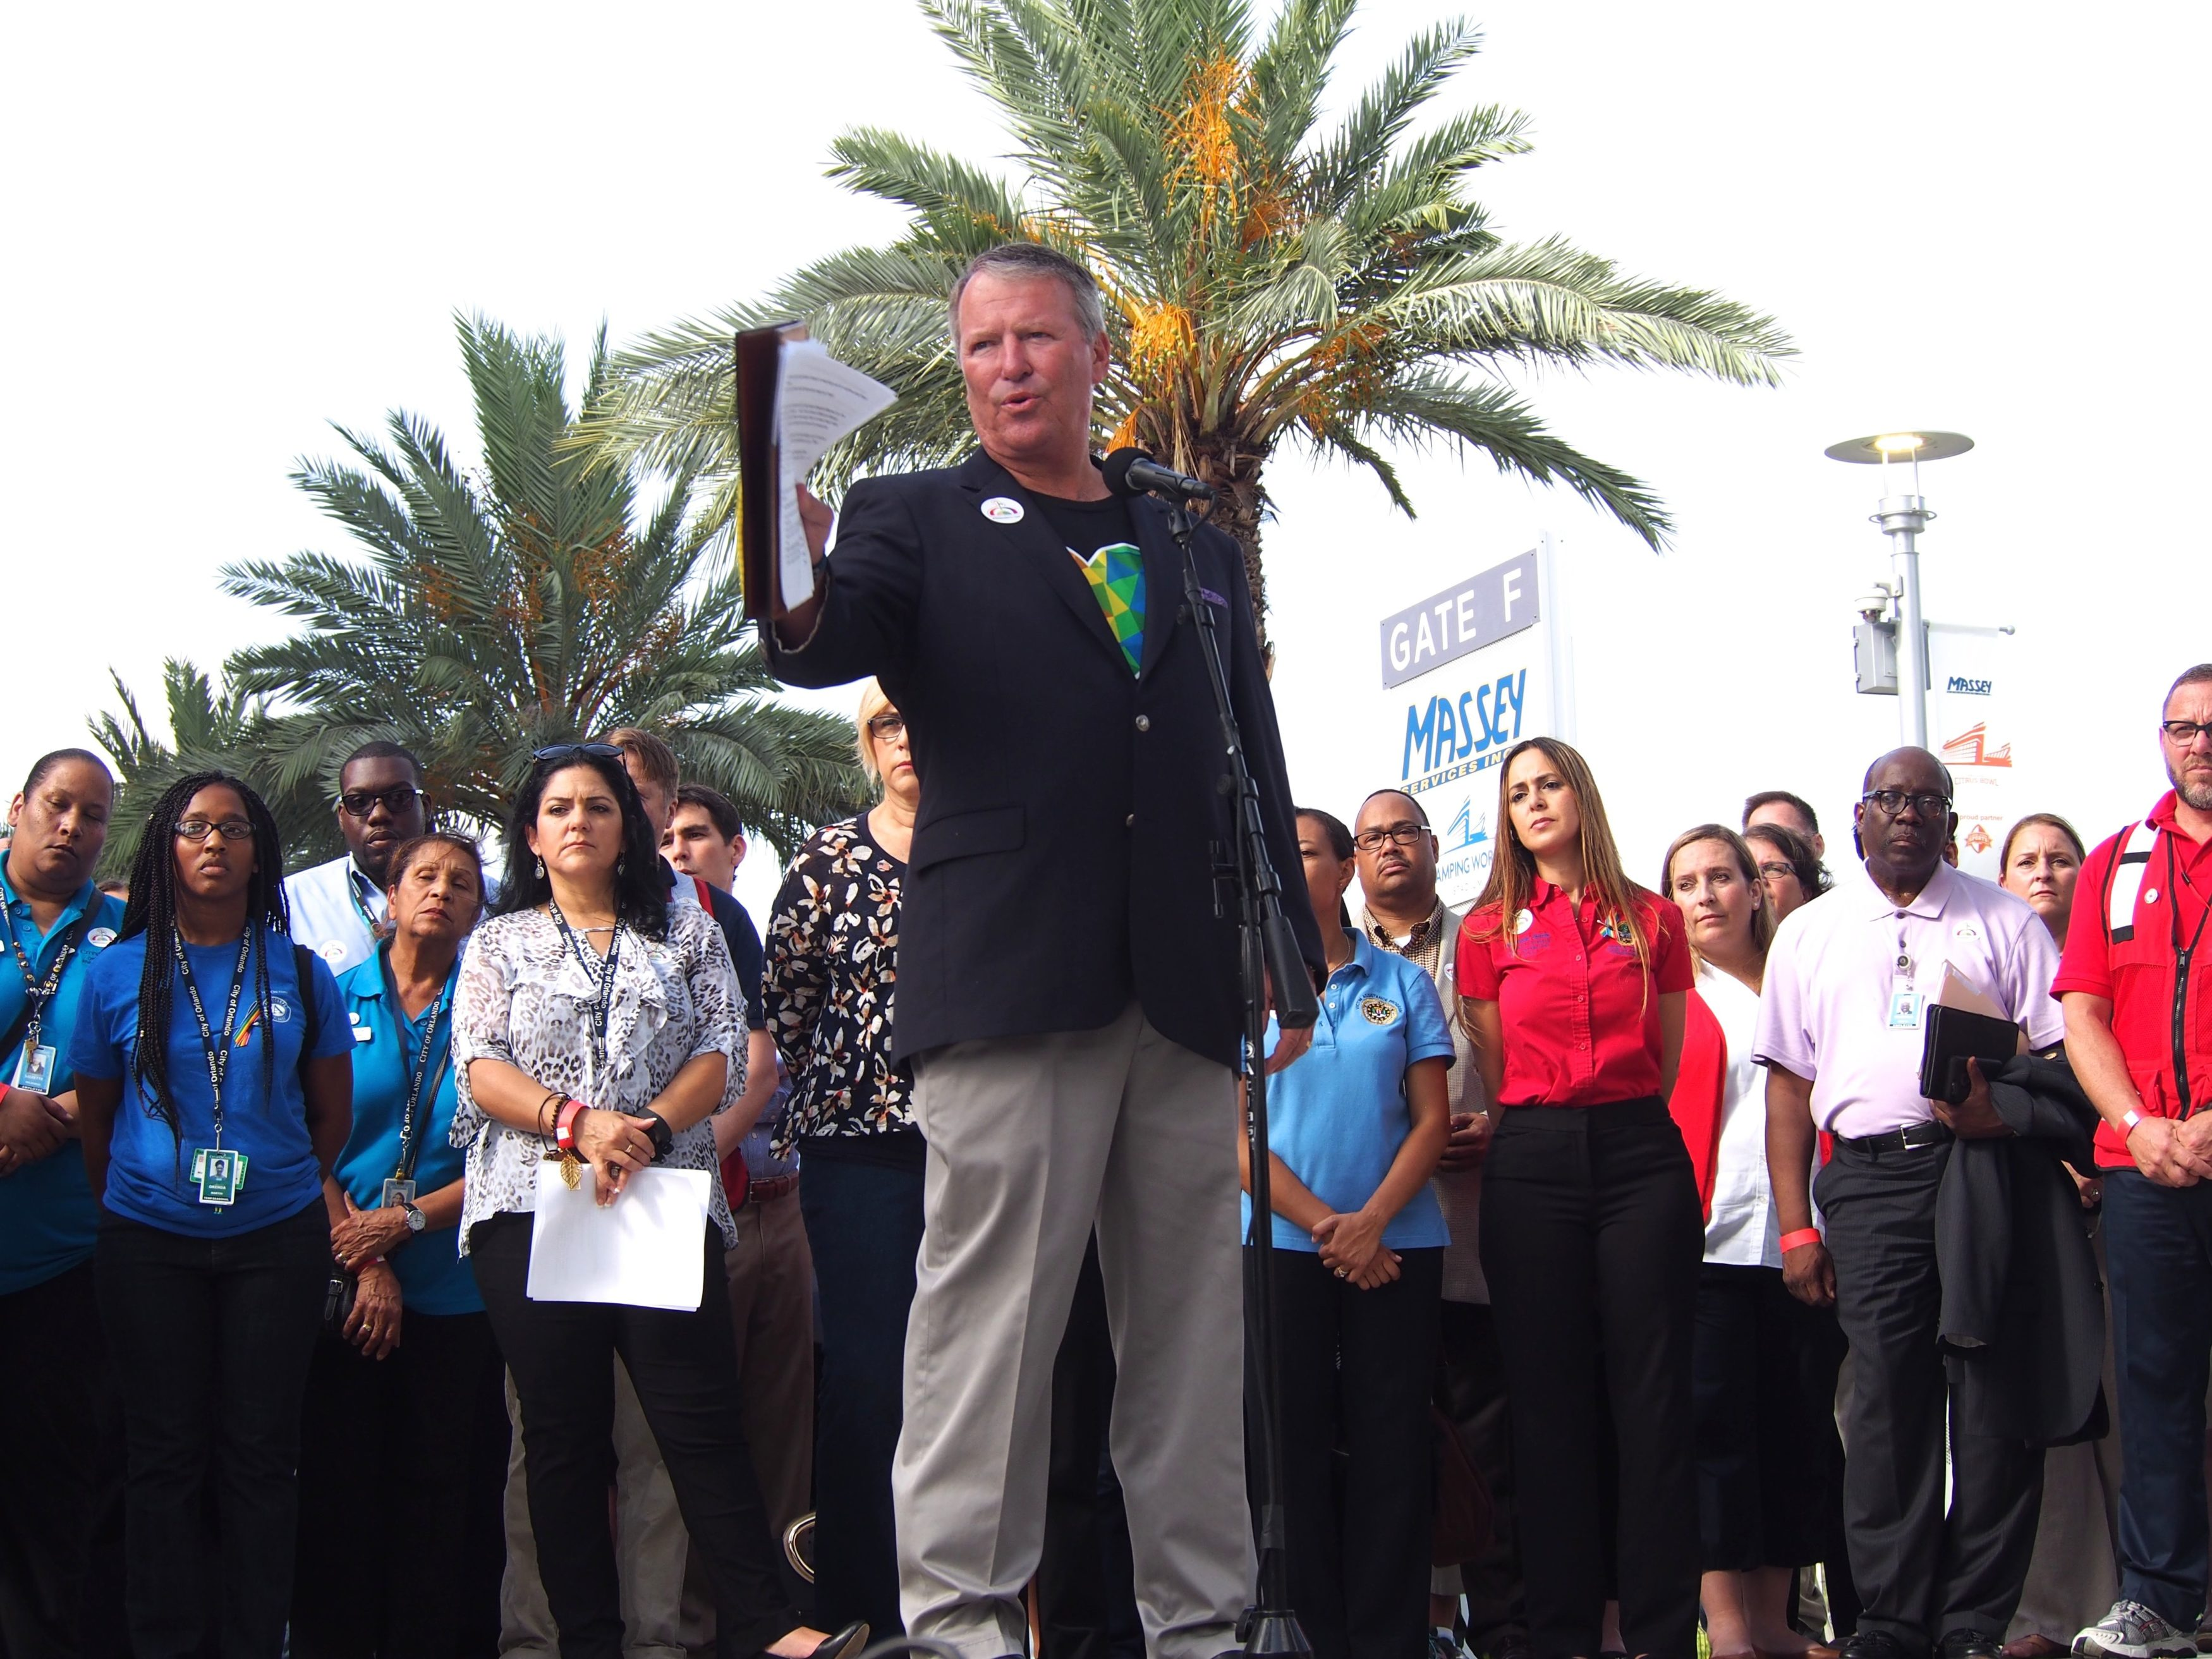 Buddy-Dyer-at-Family-Assistance-Center-3500x2625.jpg